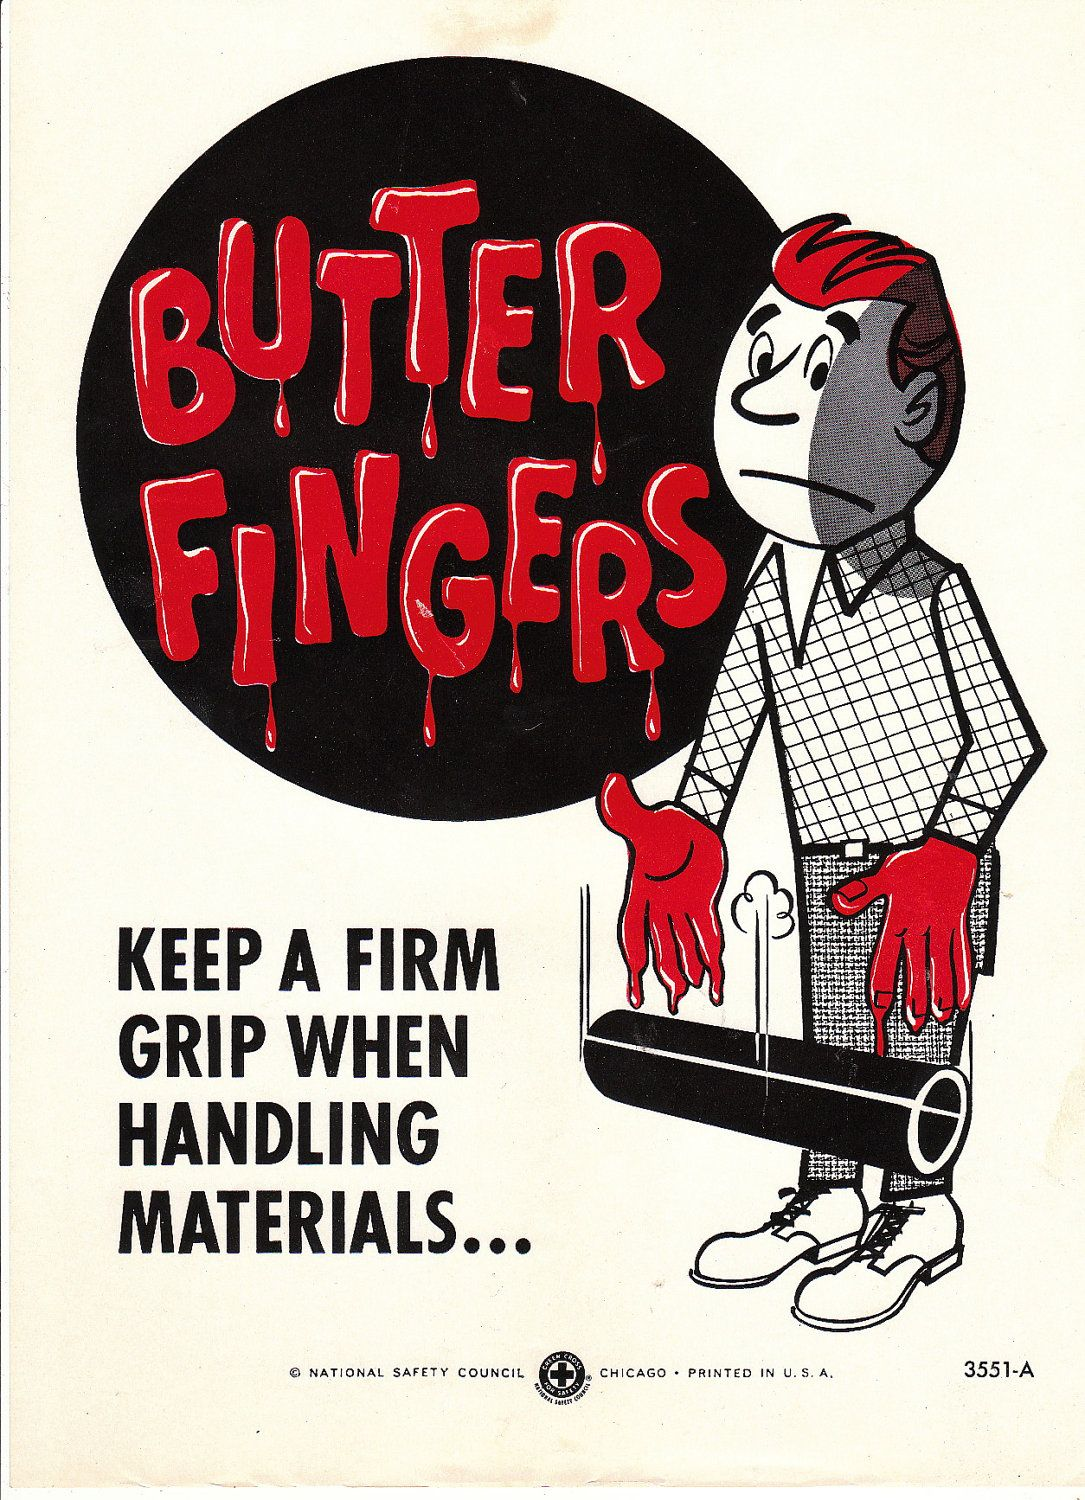 NSC Butter Fingers Safety posters, Work safety, Safety